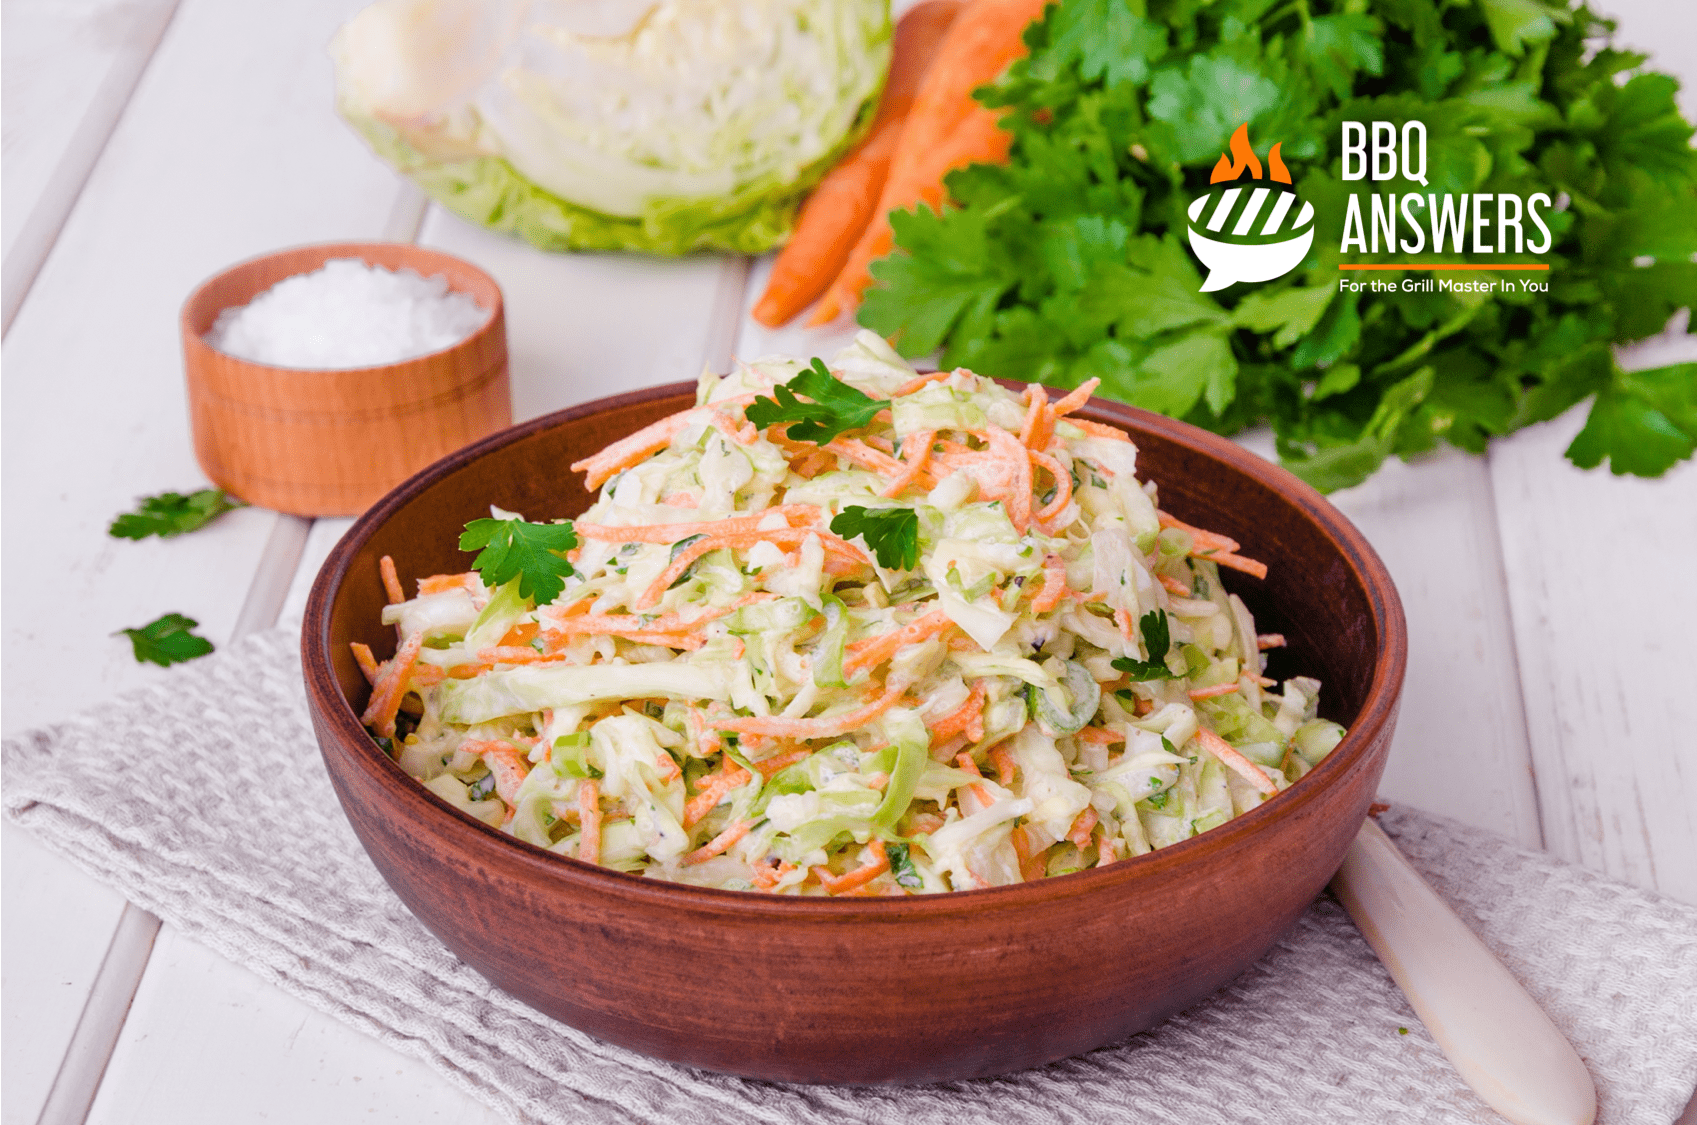 Coleslaw Recipe | Southern BBQ Sides Recipe | BBQanswers